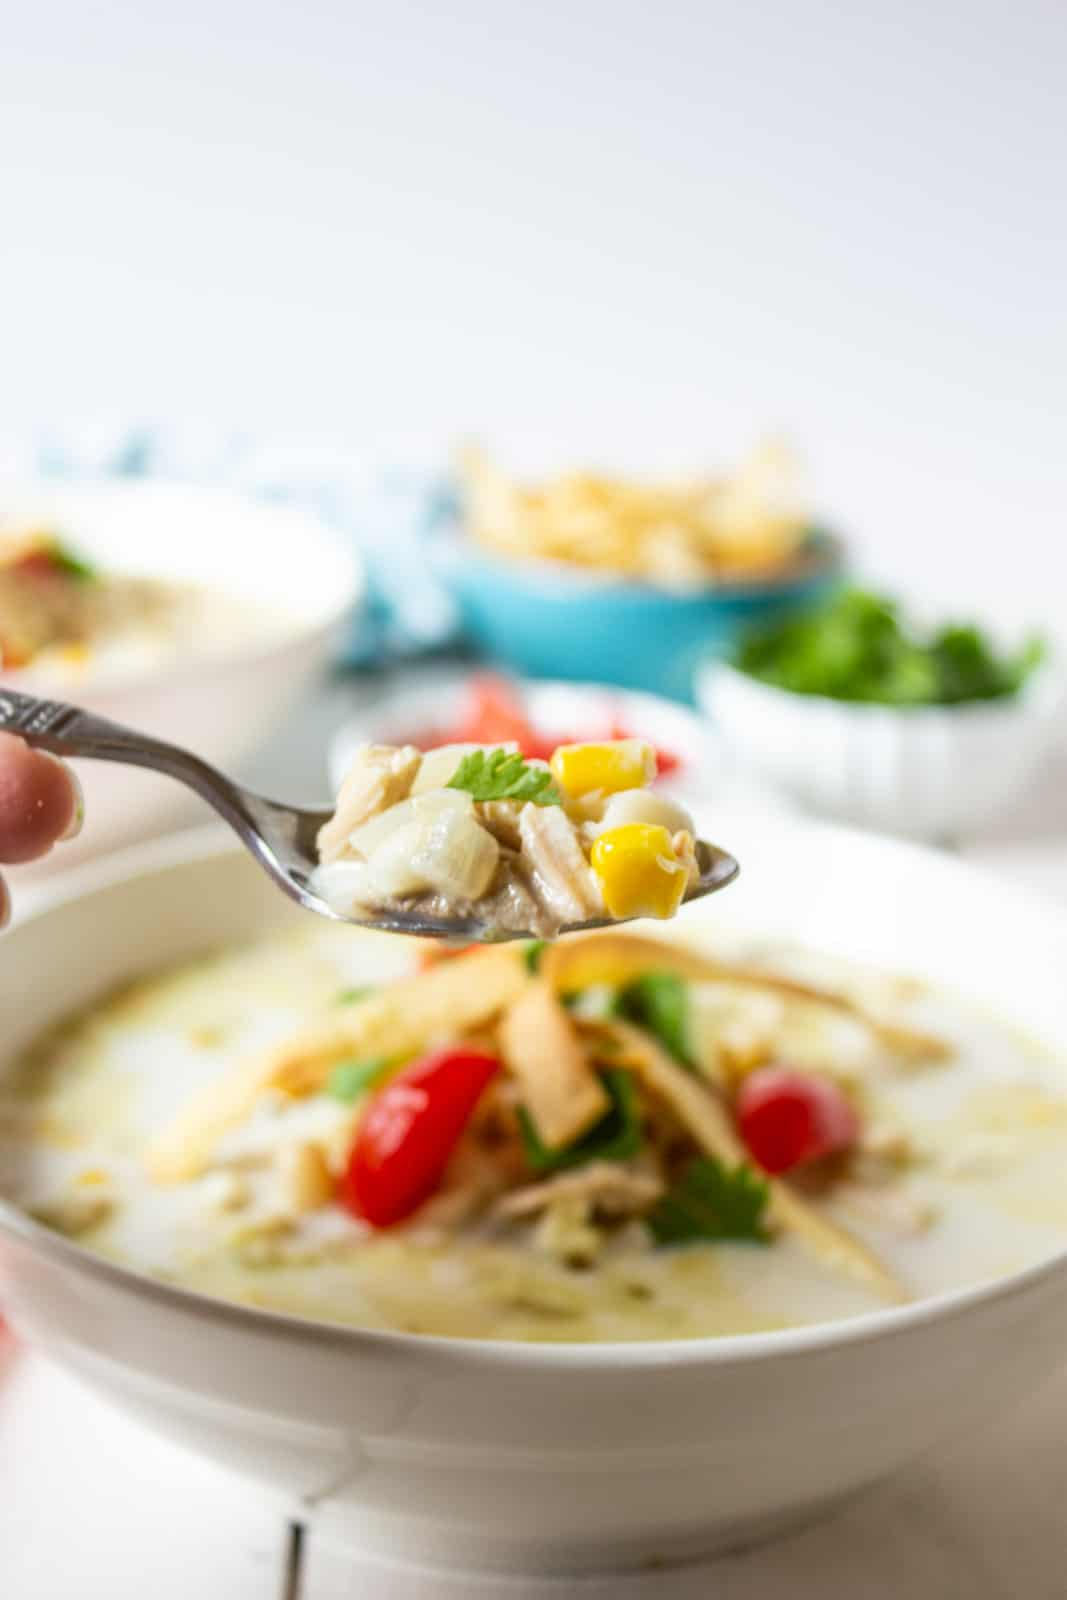 A spoonful filled with white beans and chunks of chicken in a creamy broth.